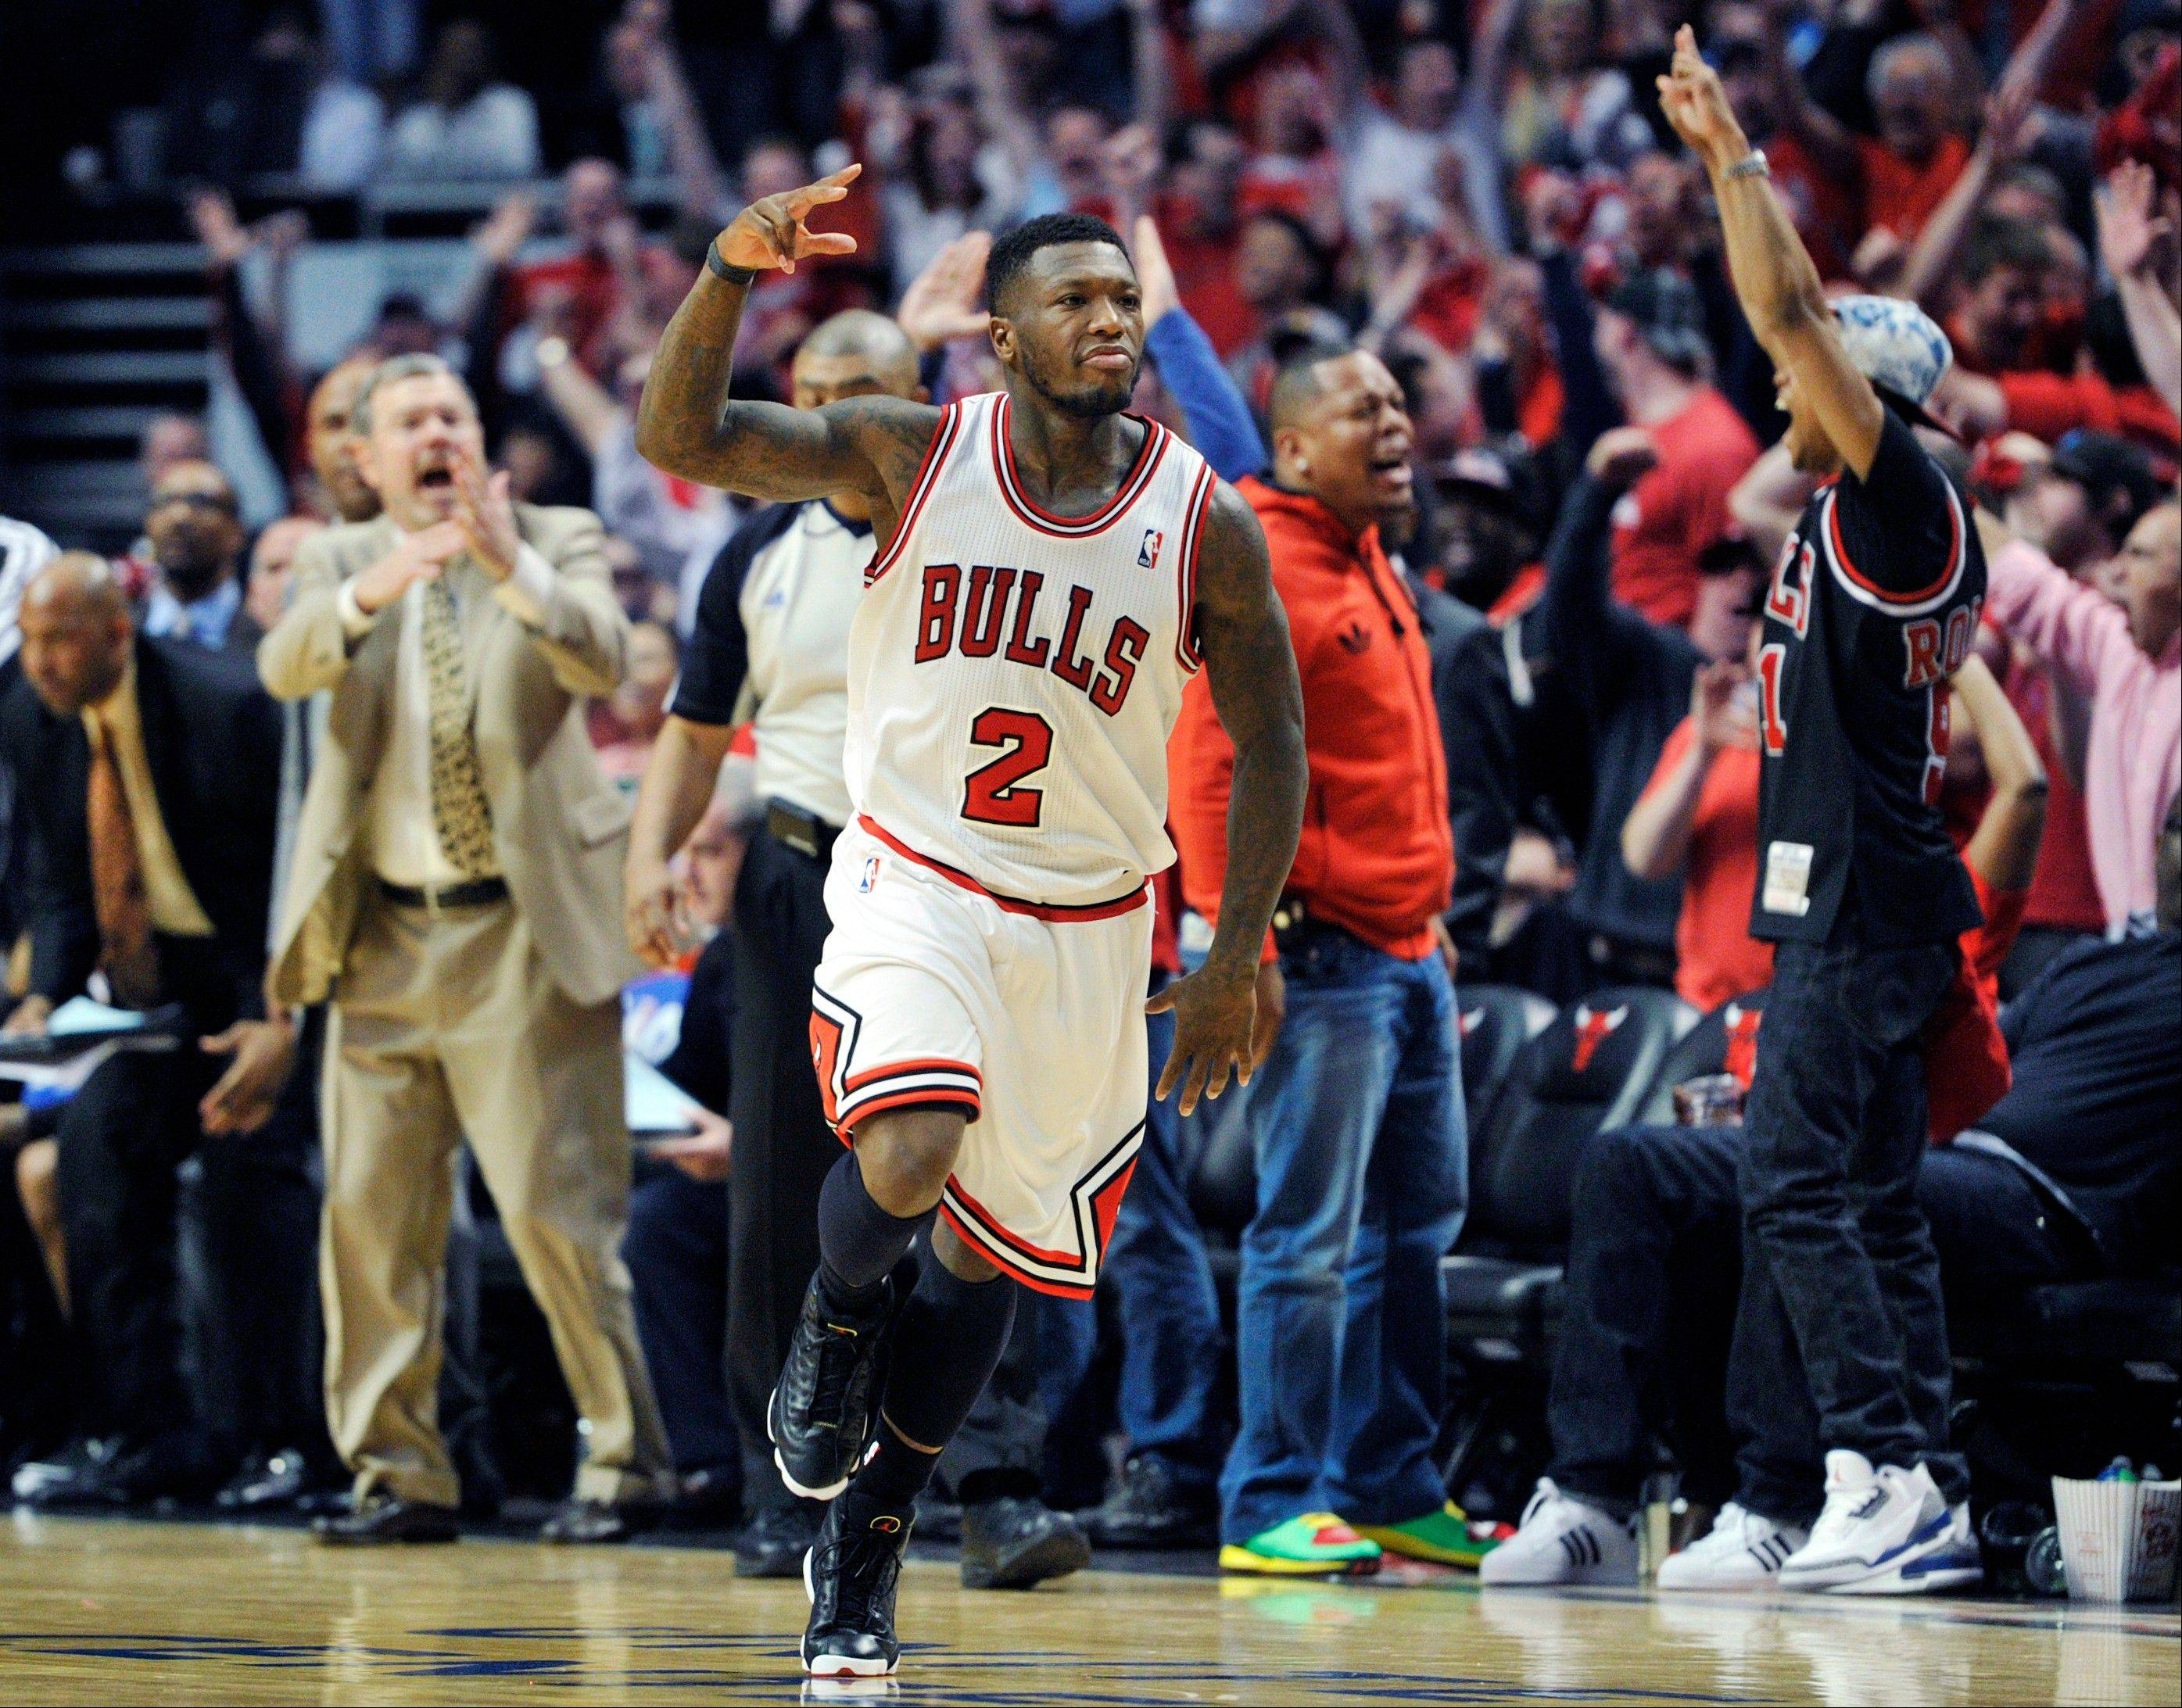 Chicago Bulls' Nate Robinson (2) celebrates a basket against the Brooklyn Nets during the second overtime in Game 4 of their first-round NBA basketball playoff series Saturday, April 27, 2013, in Chicago. The Bulls won 142-134 in three overtimes.